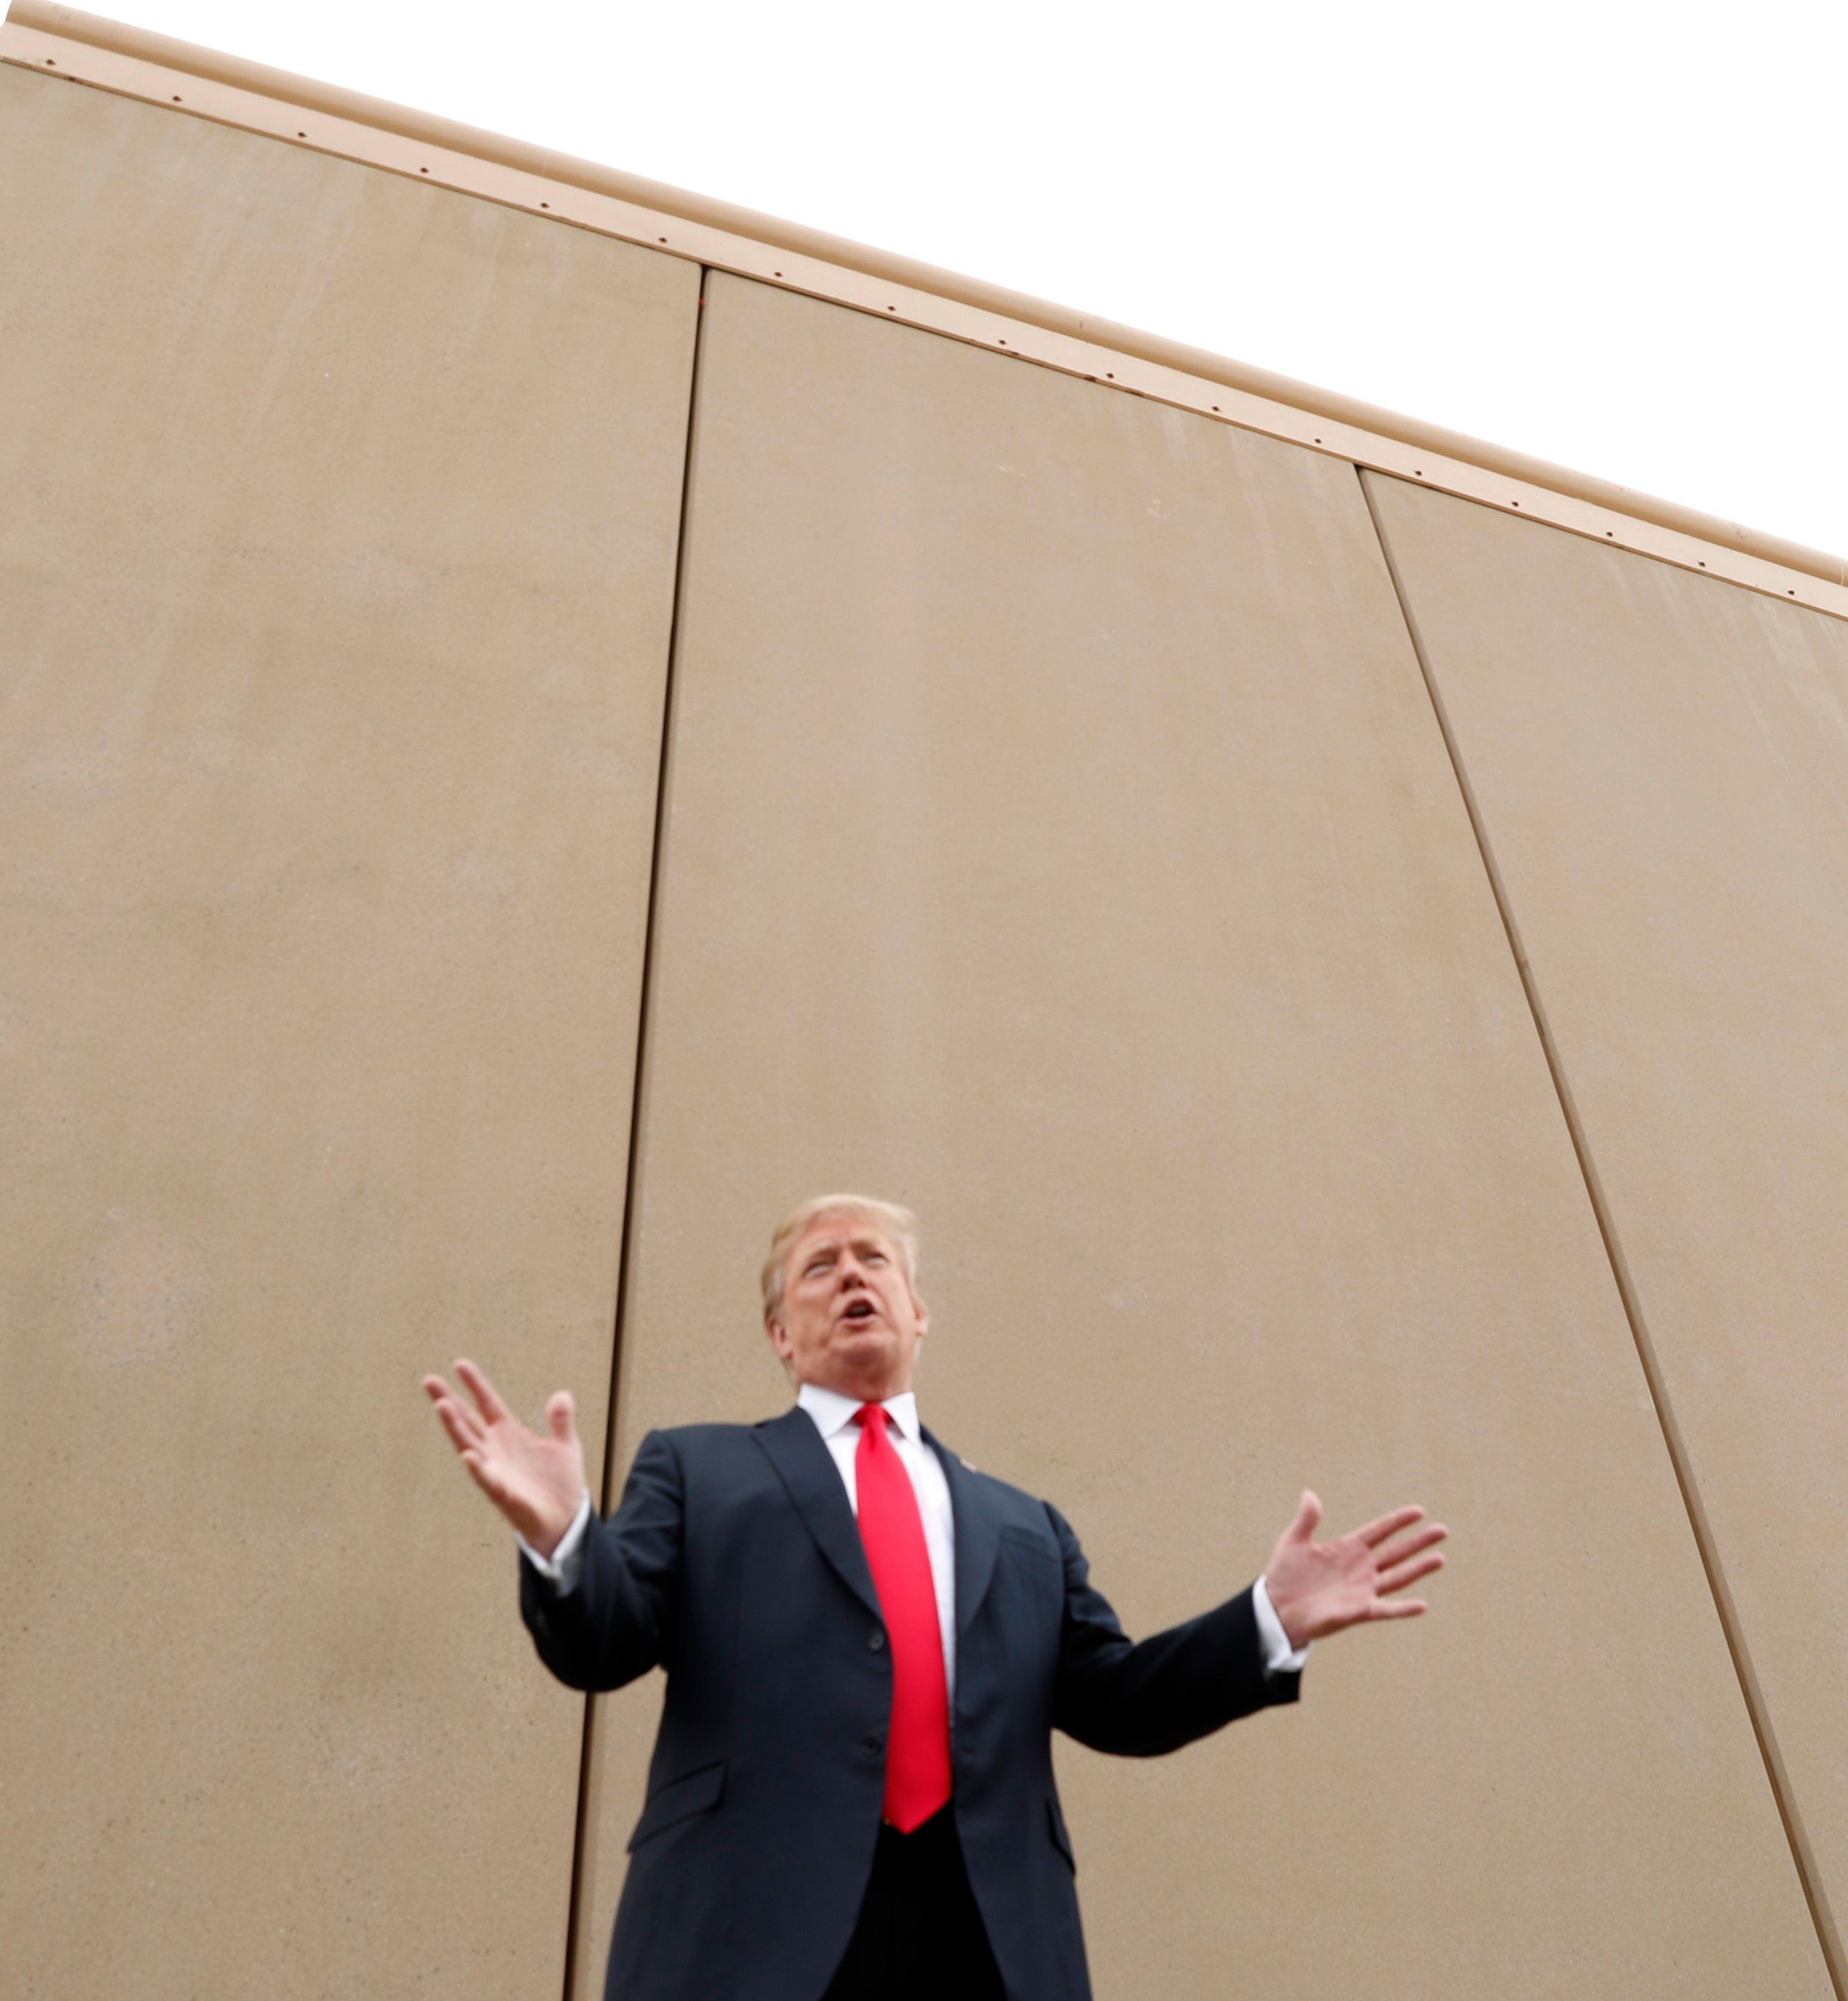 U.S. President Donald Trump speaks while participating in a tour of U.S.-Mexico border wall prototypes near the Otay Mesa Port of Entry in San Diego, California. U.S., March 13, 2018. REUTERS/Kevin Lamarque